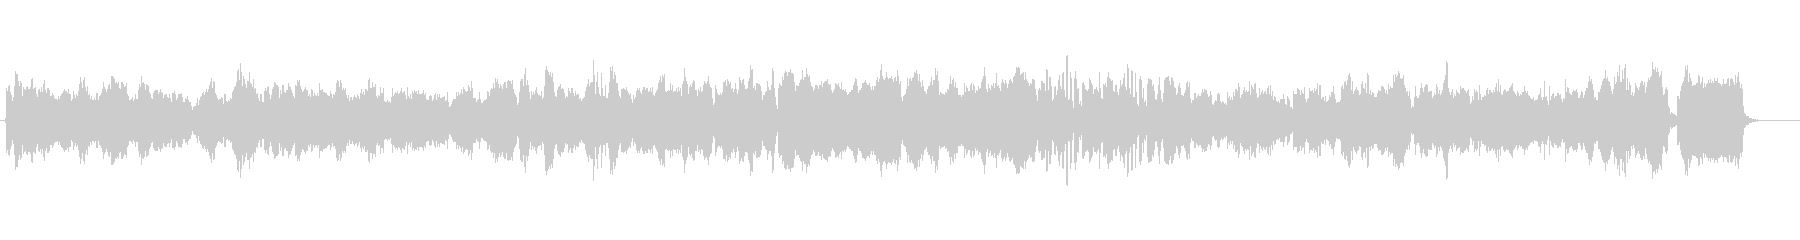 Dramatic music from live music recorder's unreproduced waveform